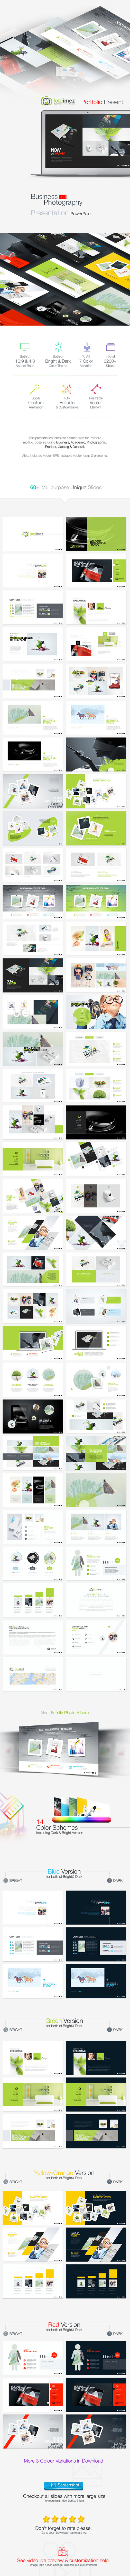 GraphicRiver FotoImez Portfolio Multipurpose Presentation 10310382